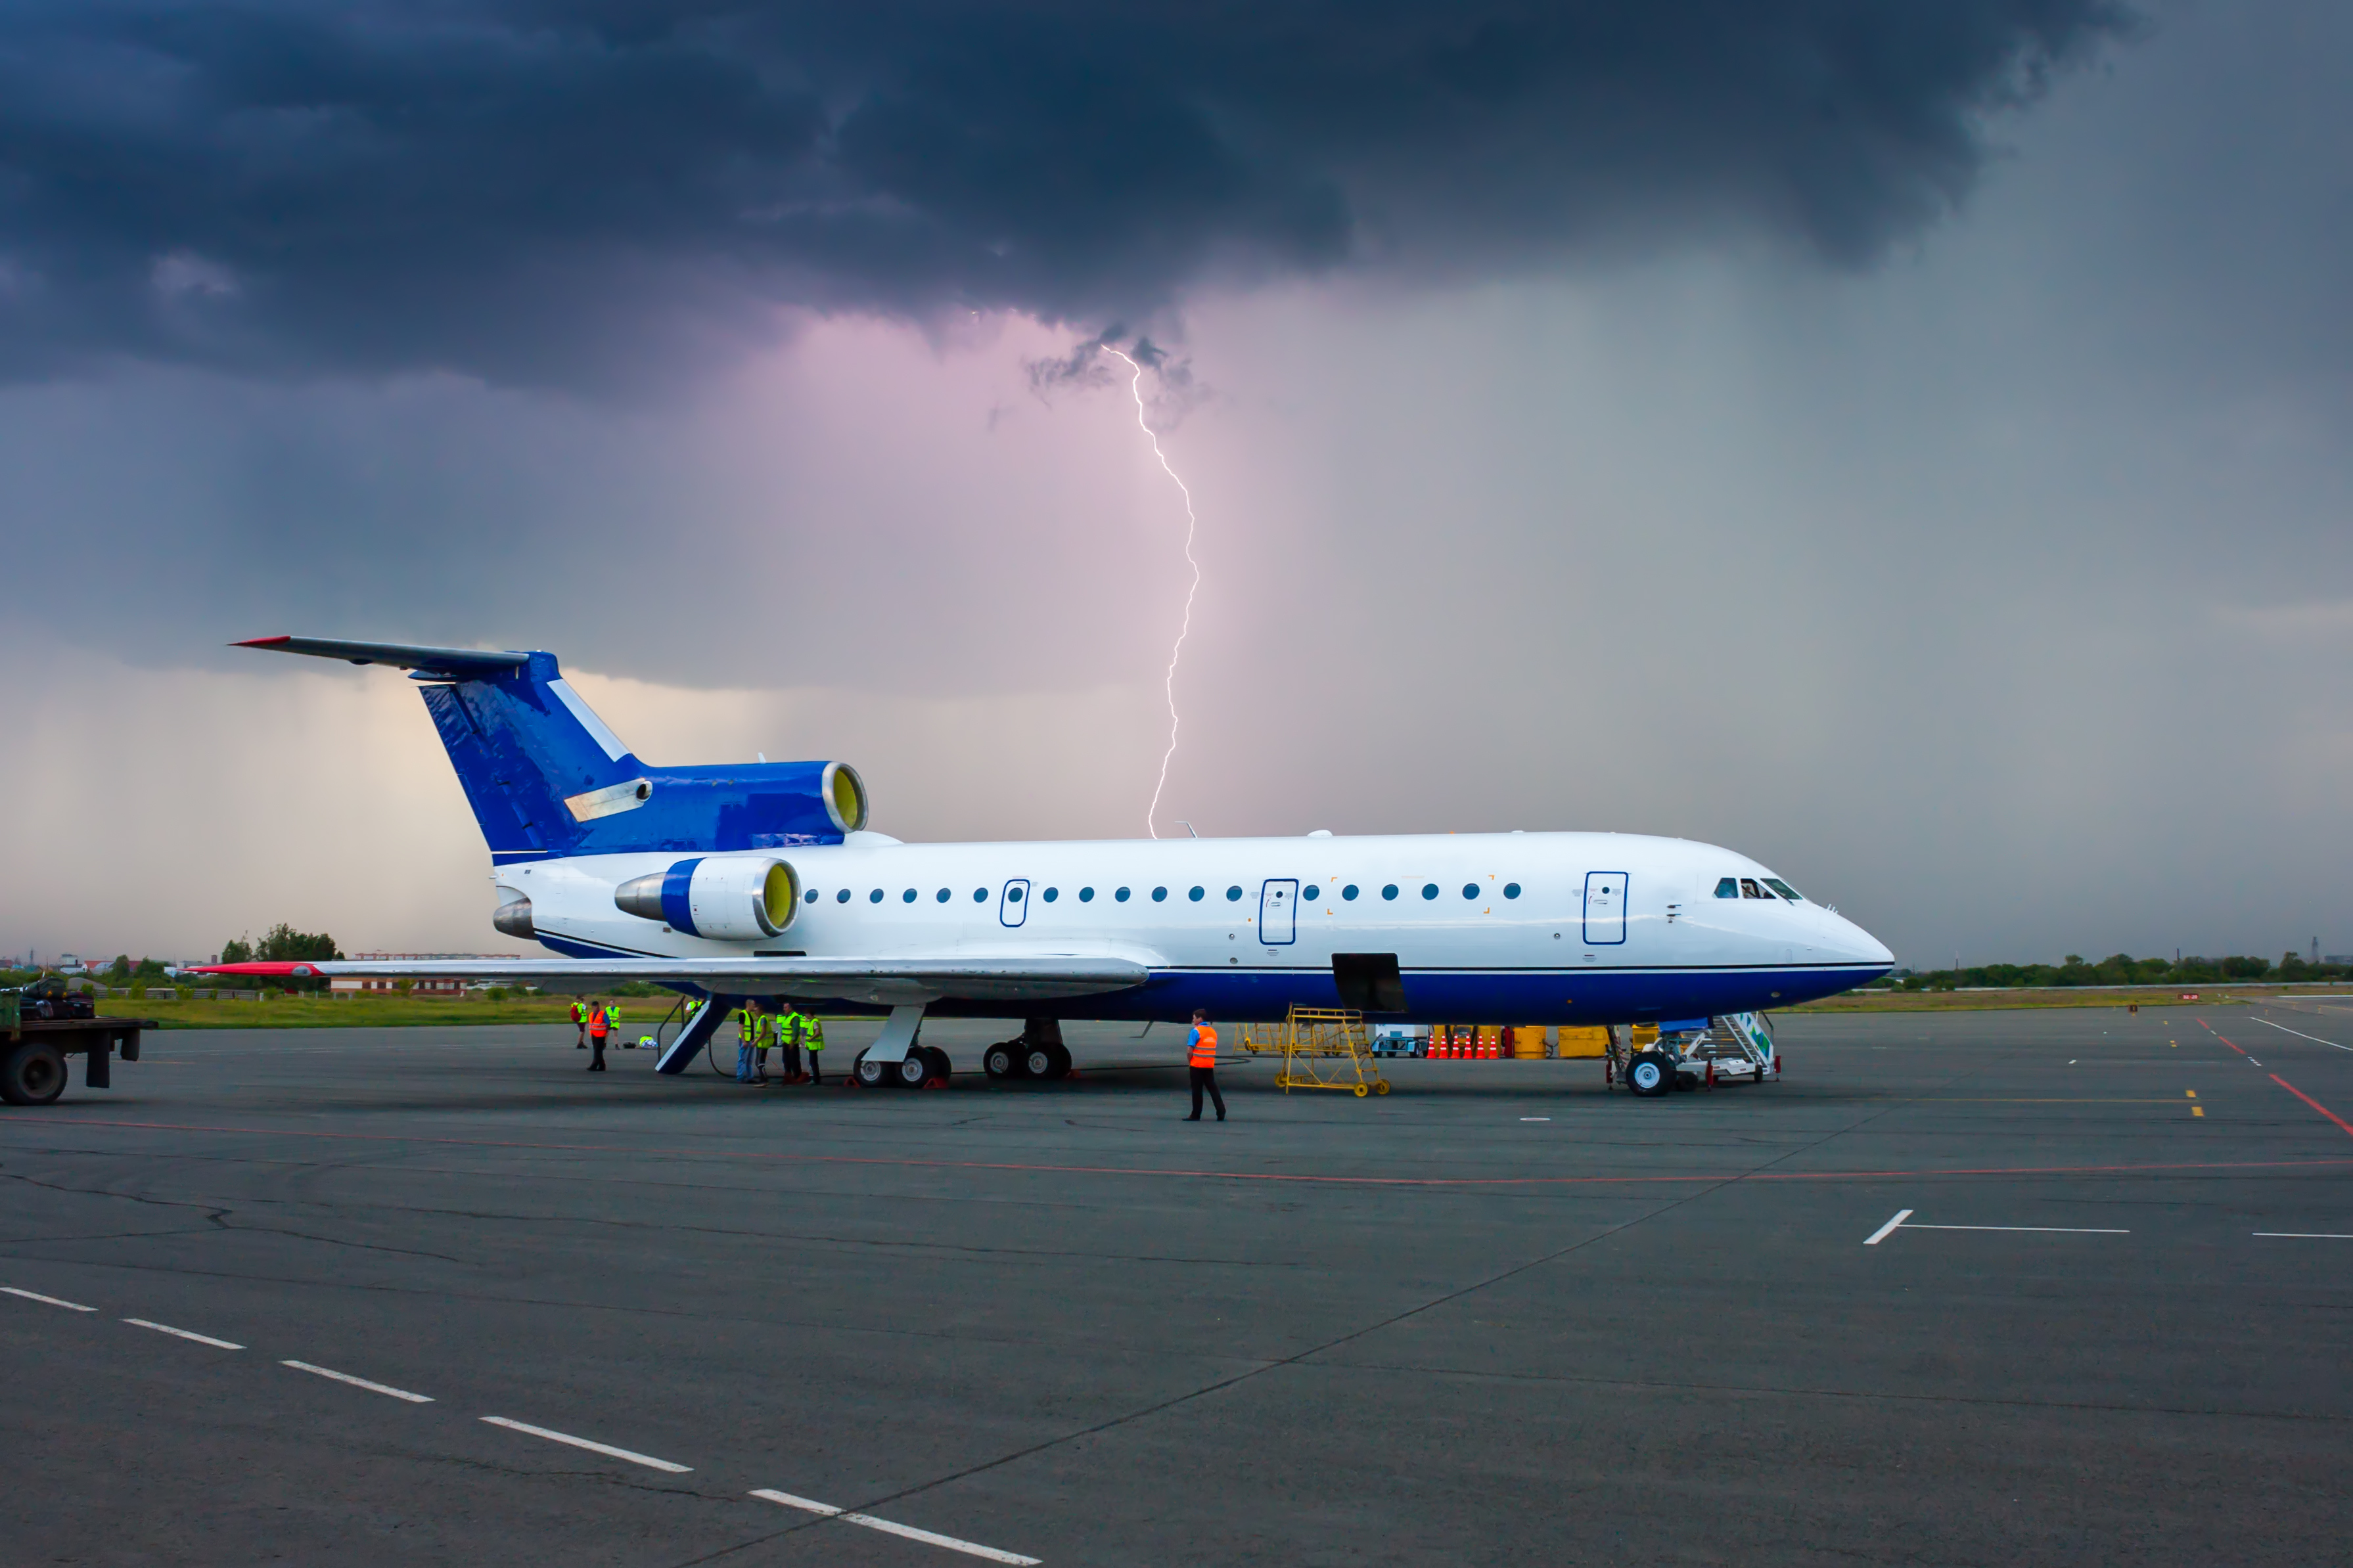 Tornadoes and travel: How to stay safe inside an airport or